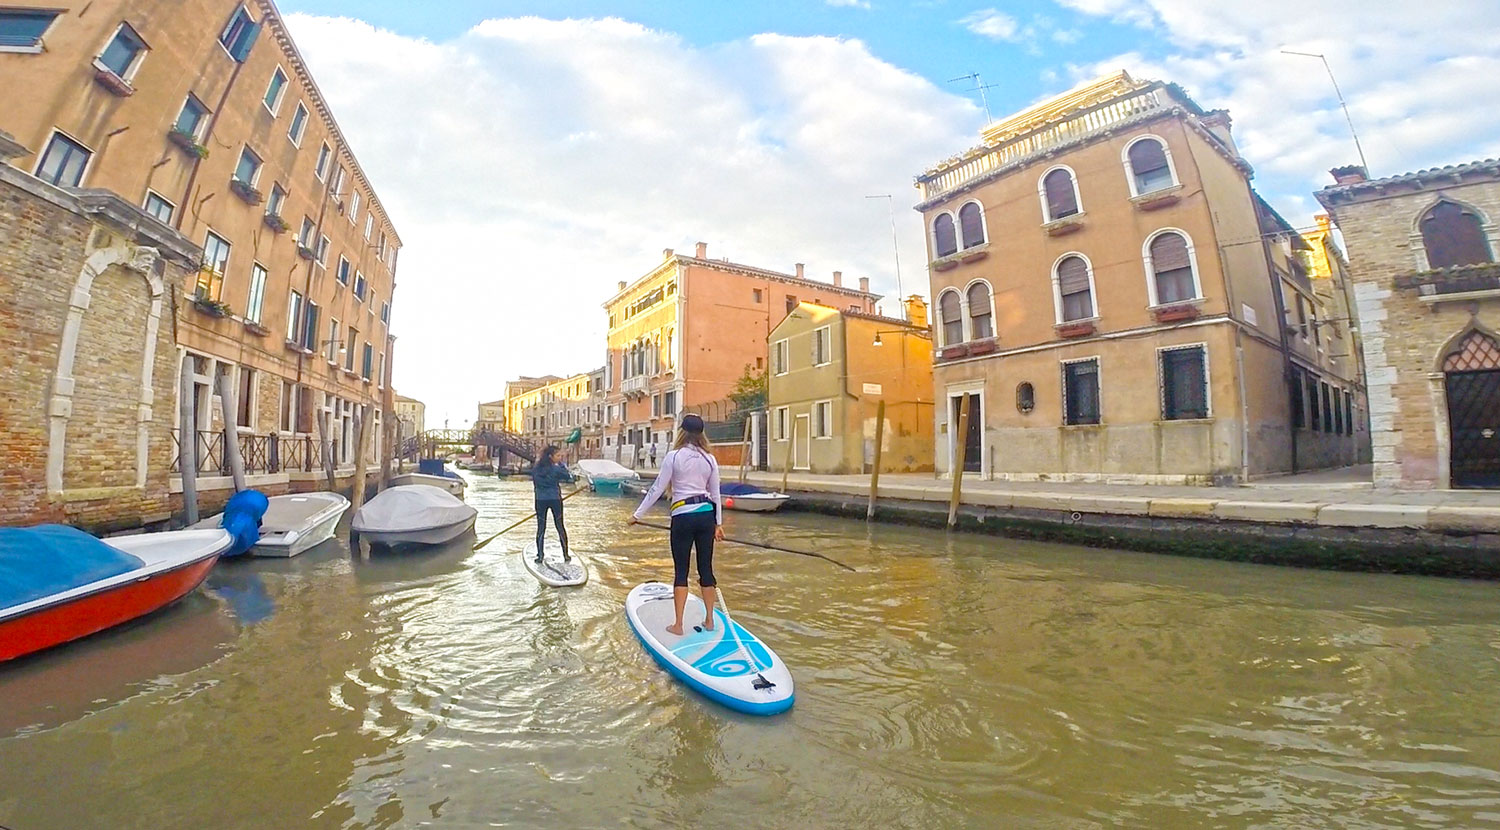 SUP & a CUP- Venetian Canals in Venice, Italy 2